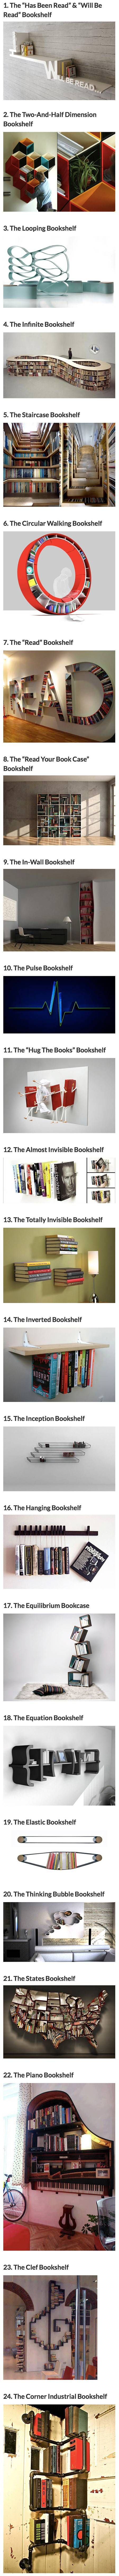 We have rounded up some cool and creative bookshelves that geeks would love.